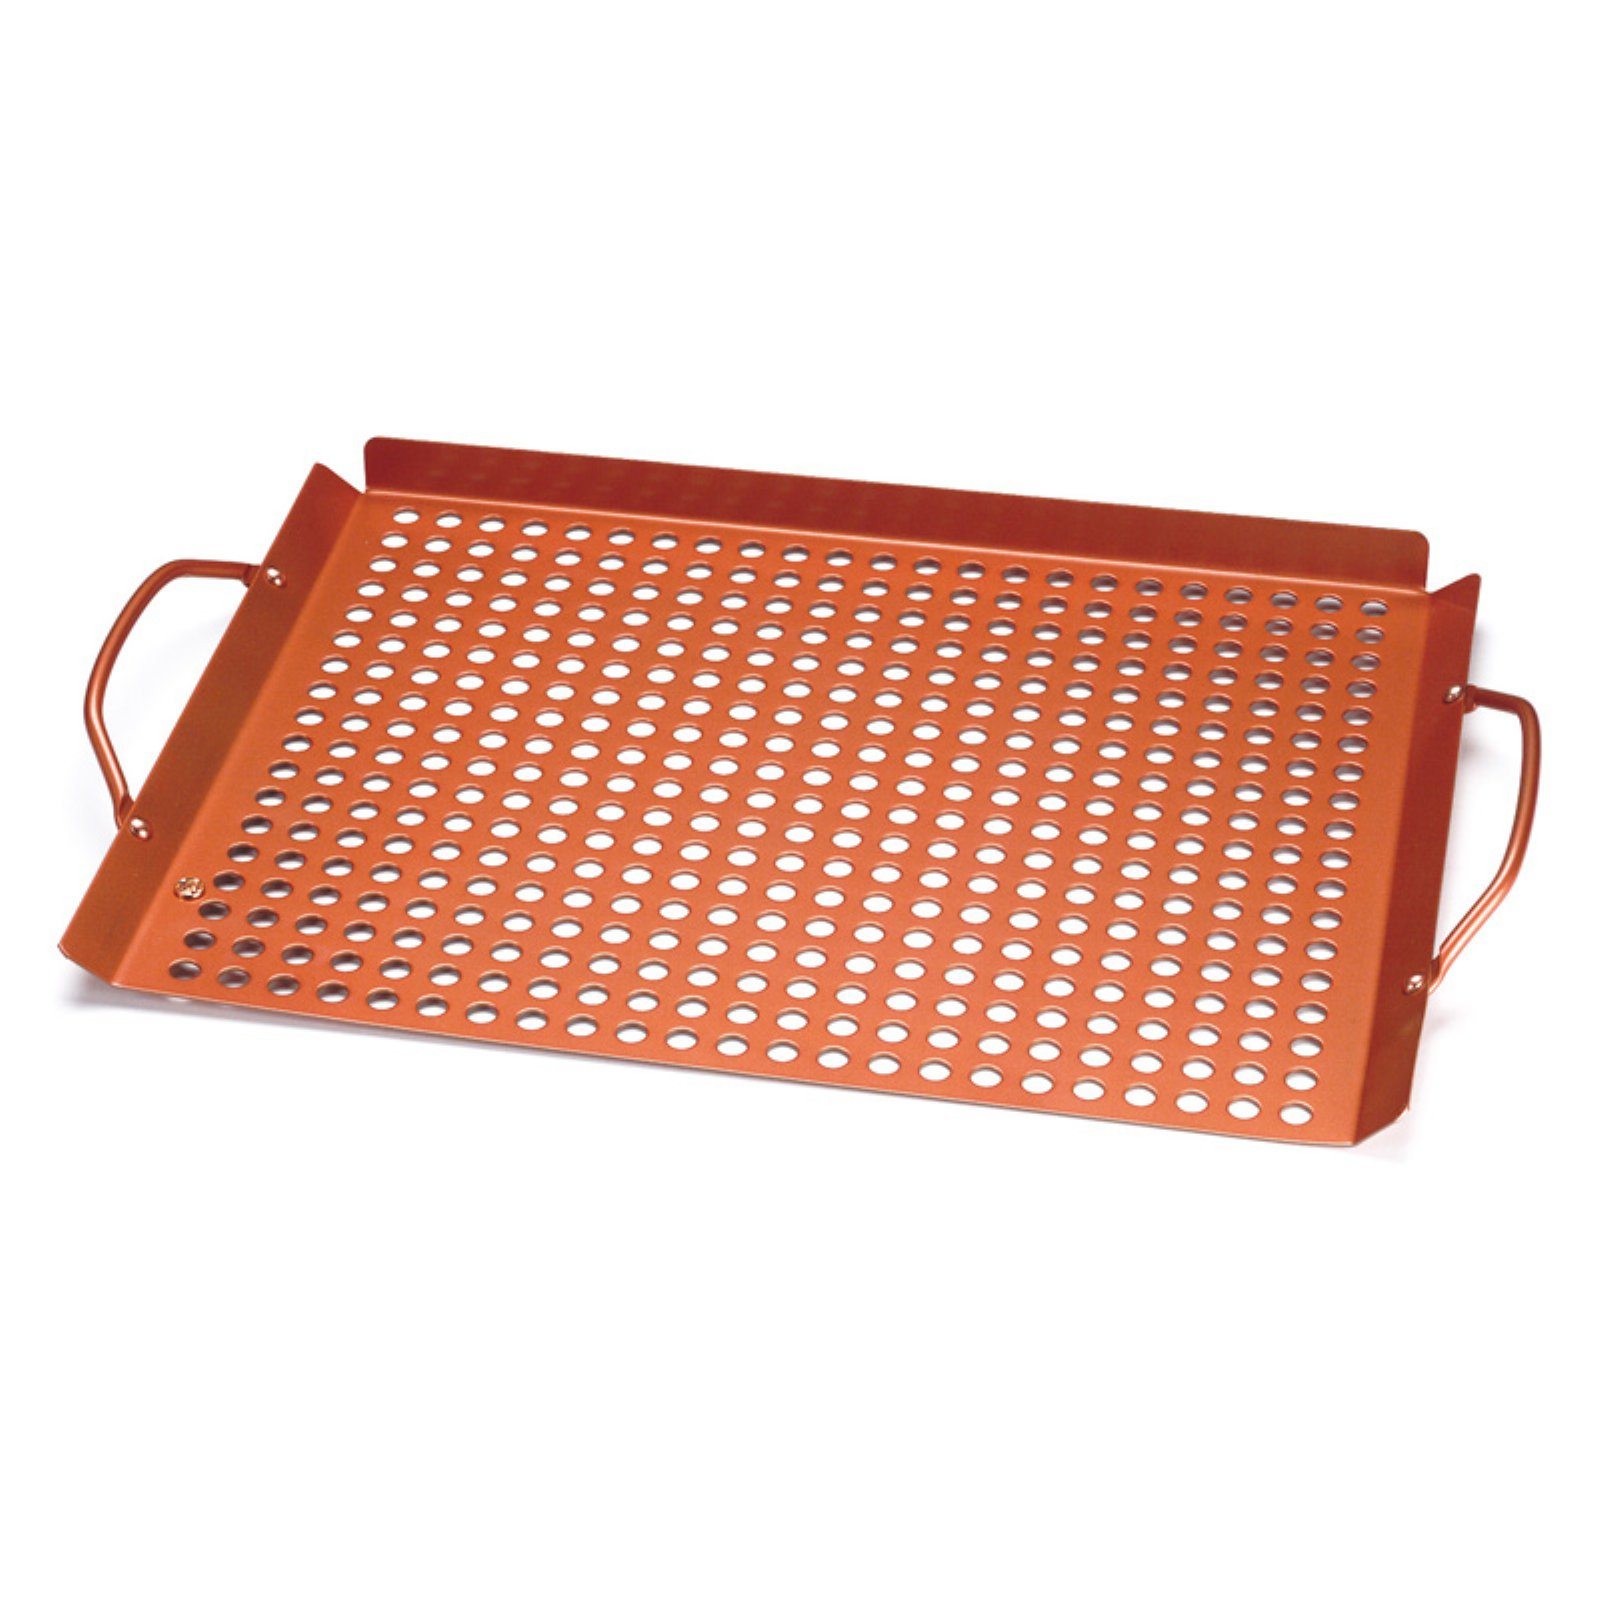 Outset QN71 Non-Stick Grill Grid with Handles - Copper